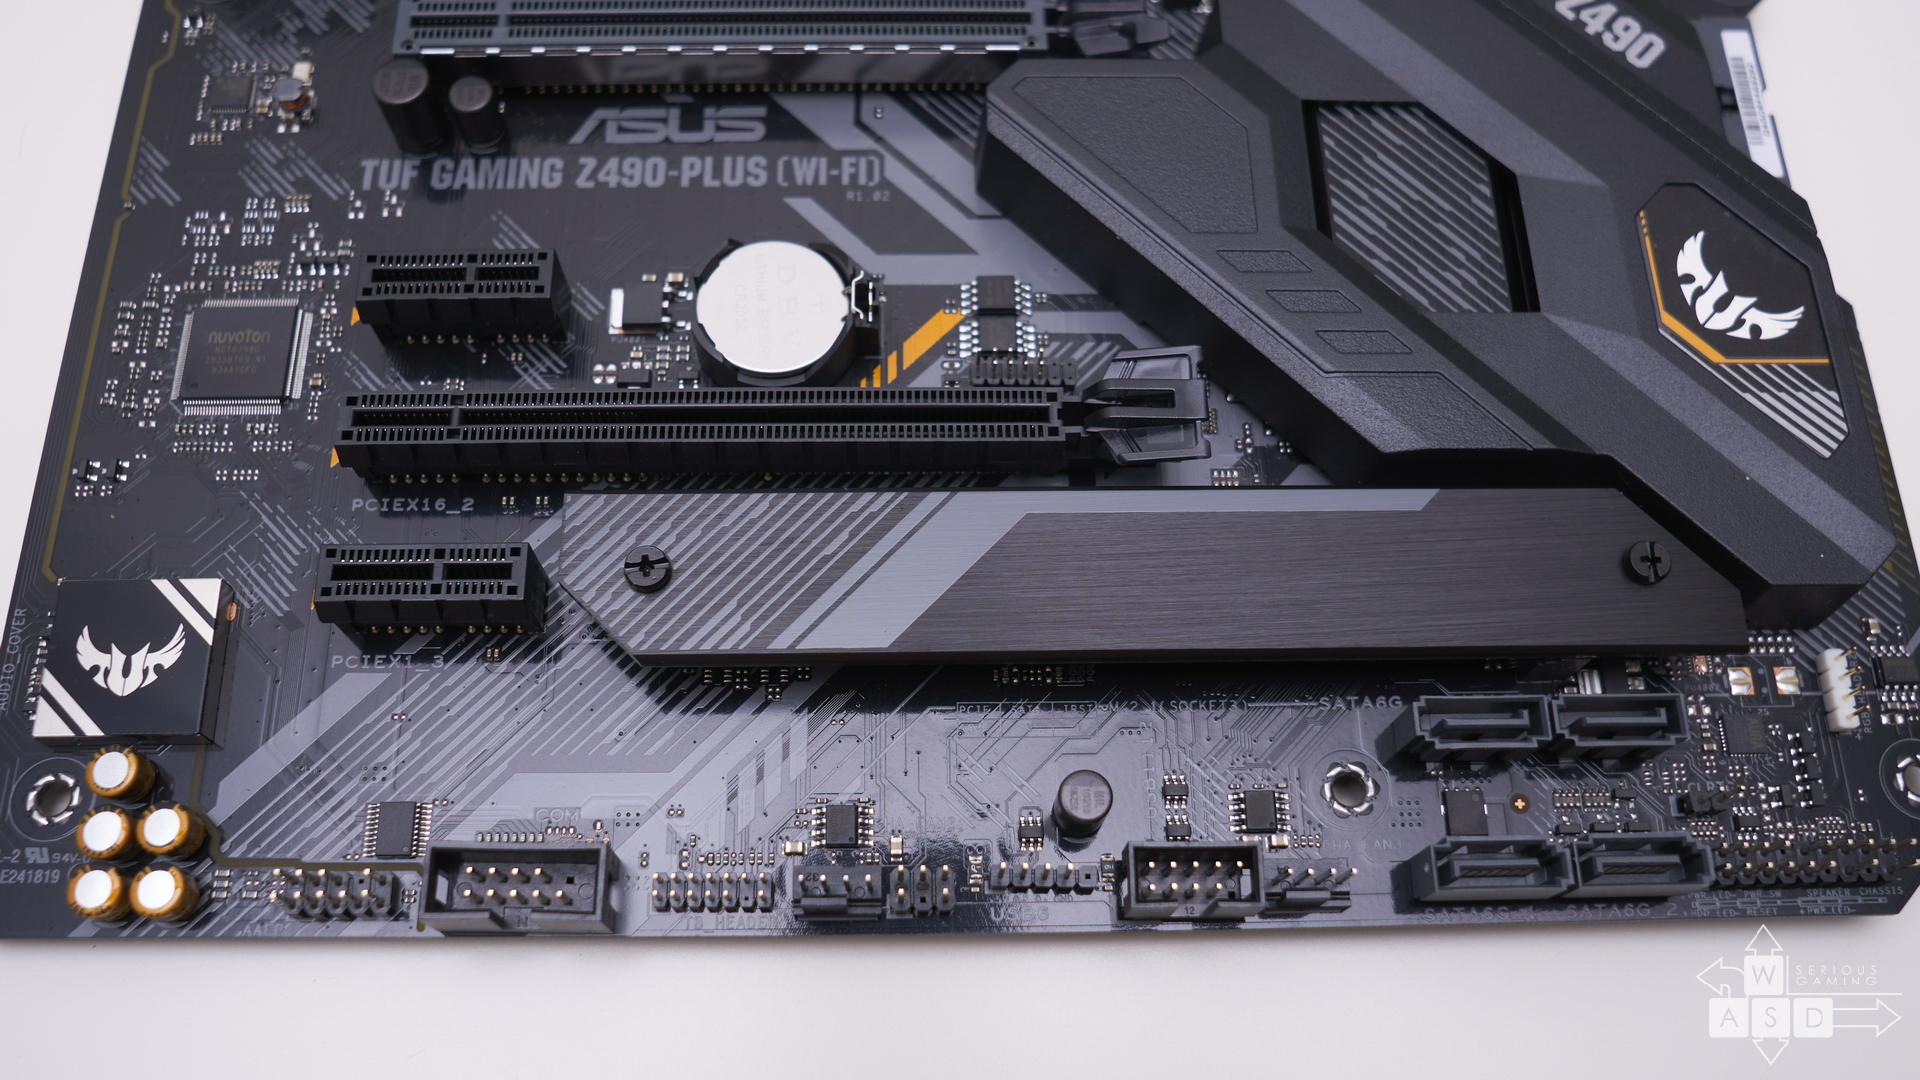 Asus TUF Gaming Z490-Plus (Wi-Fi) review | WASD